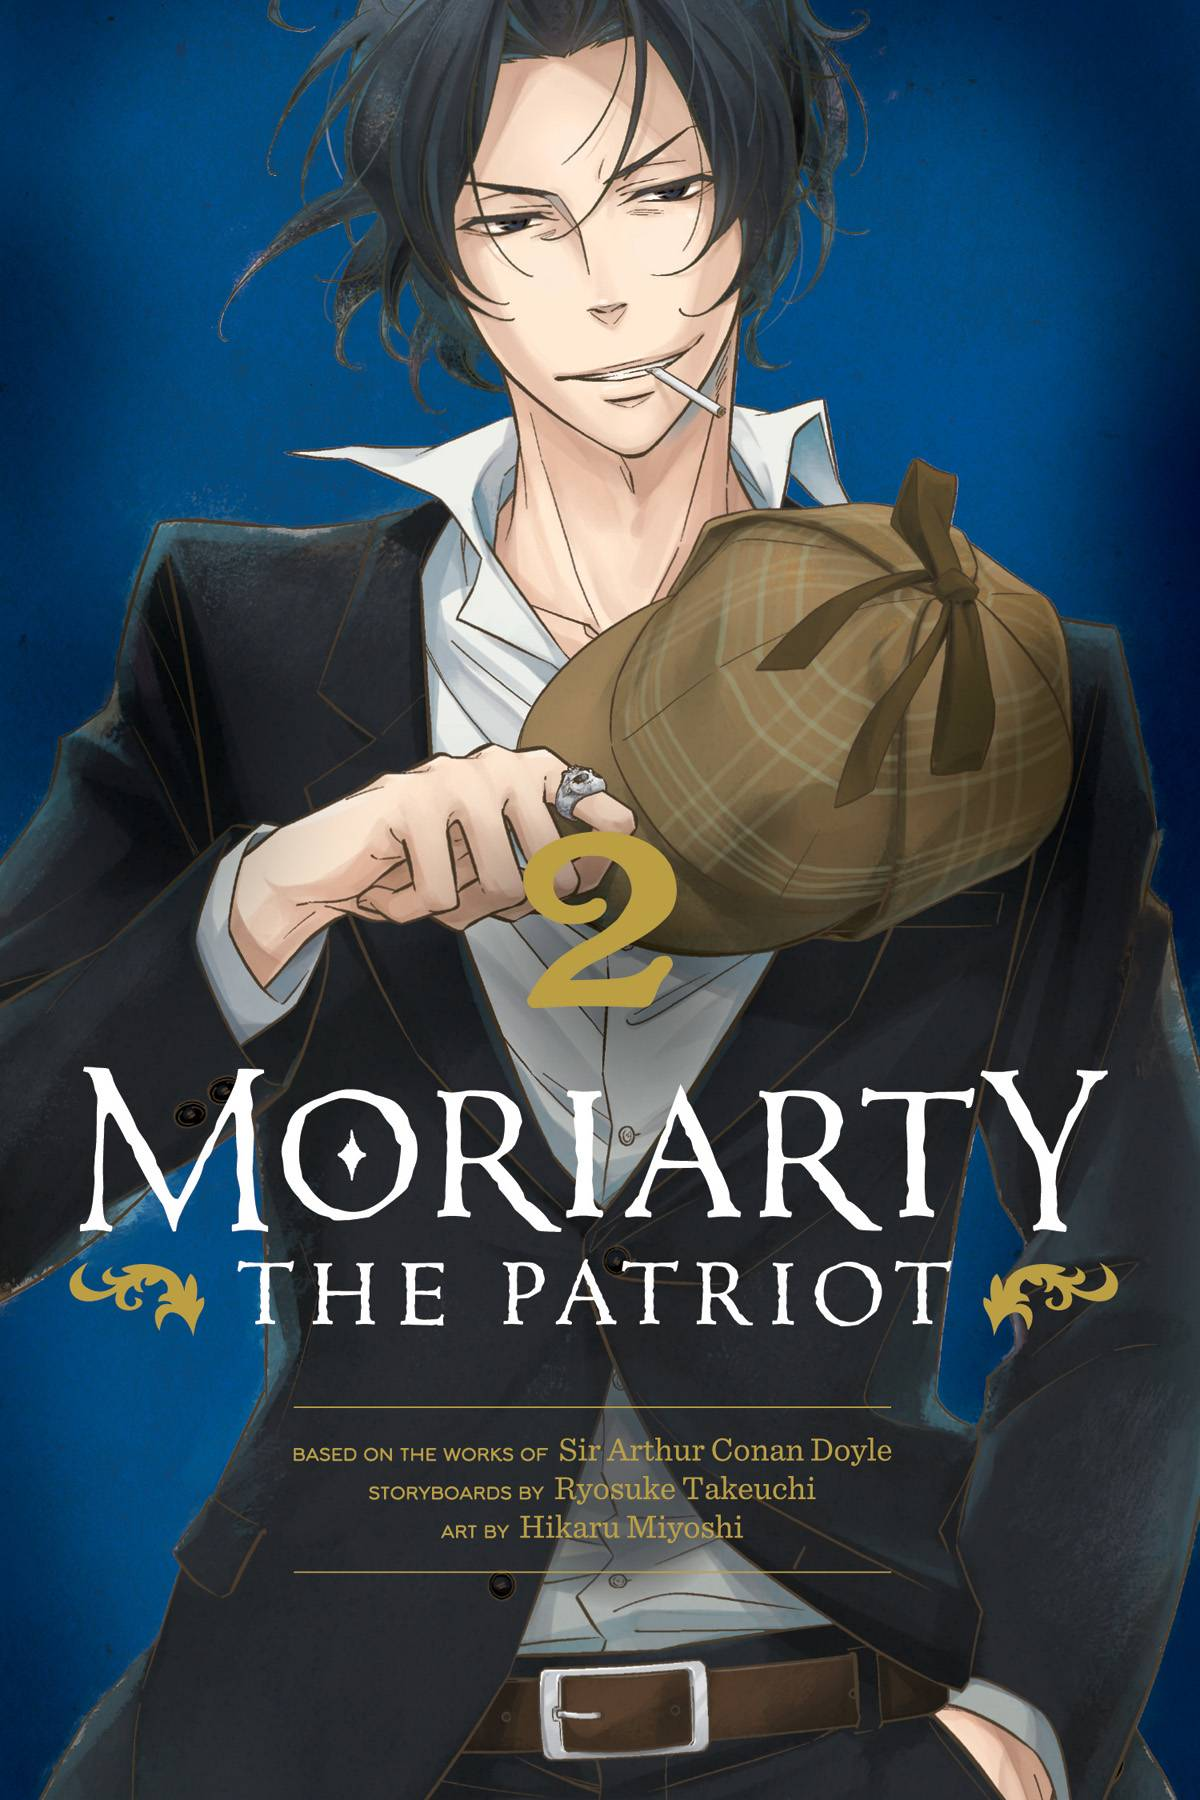 MORIARTY THE PATRIOT GN 02